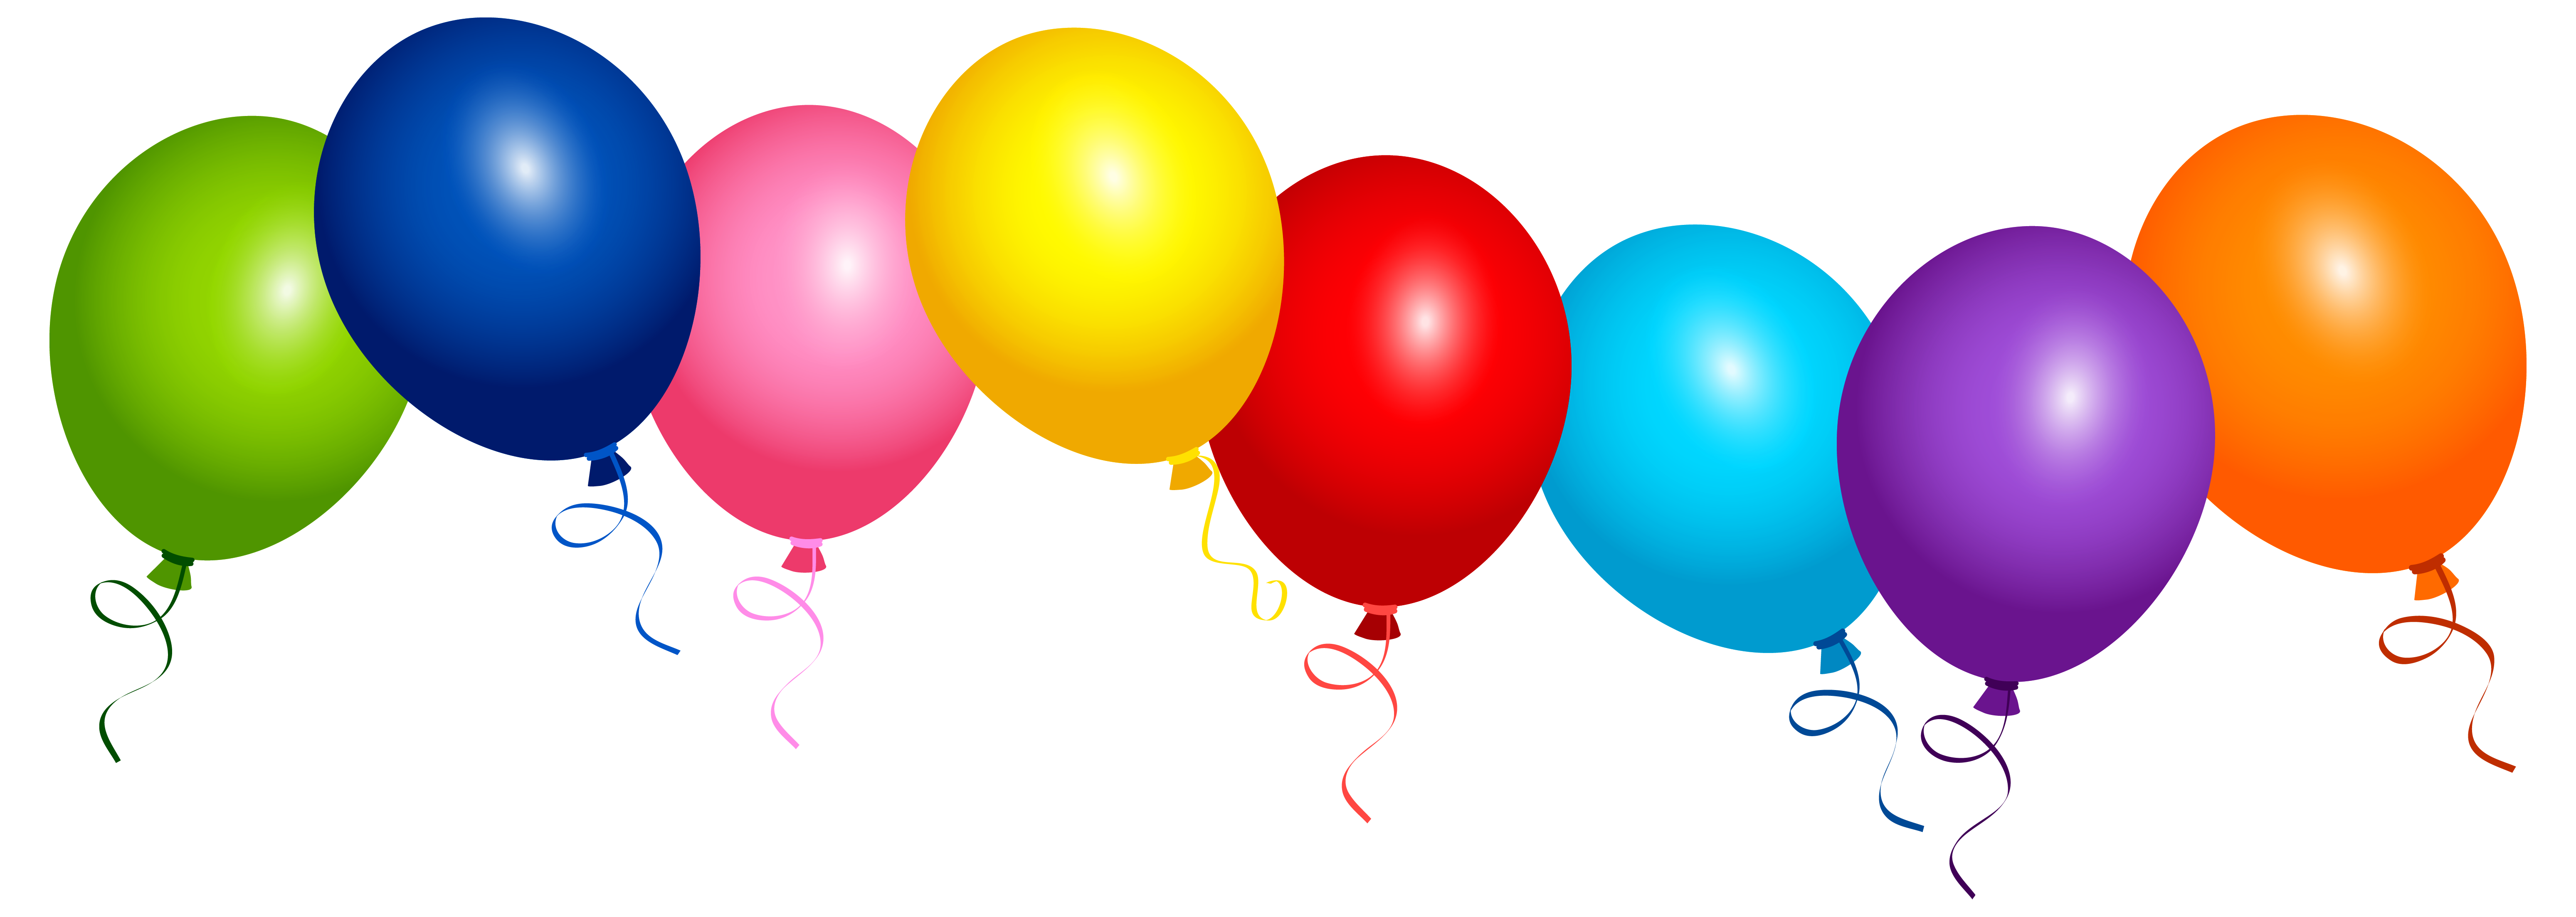 Balloons pictures clipart royalty free stock Deco Balloons PNG Clipart Image | Gallery Yopriceville - High ... royalty free stock